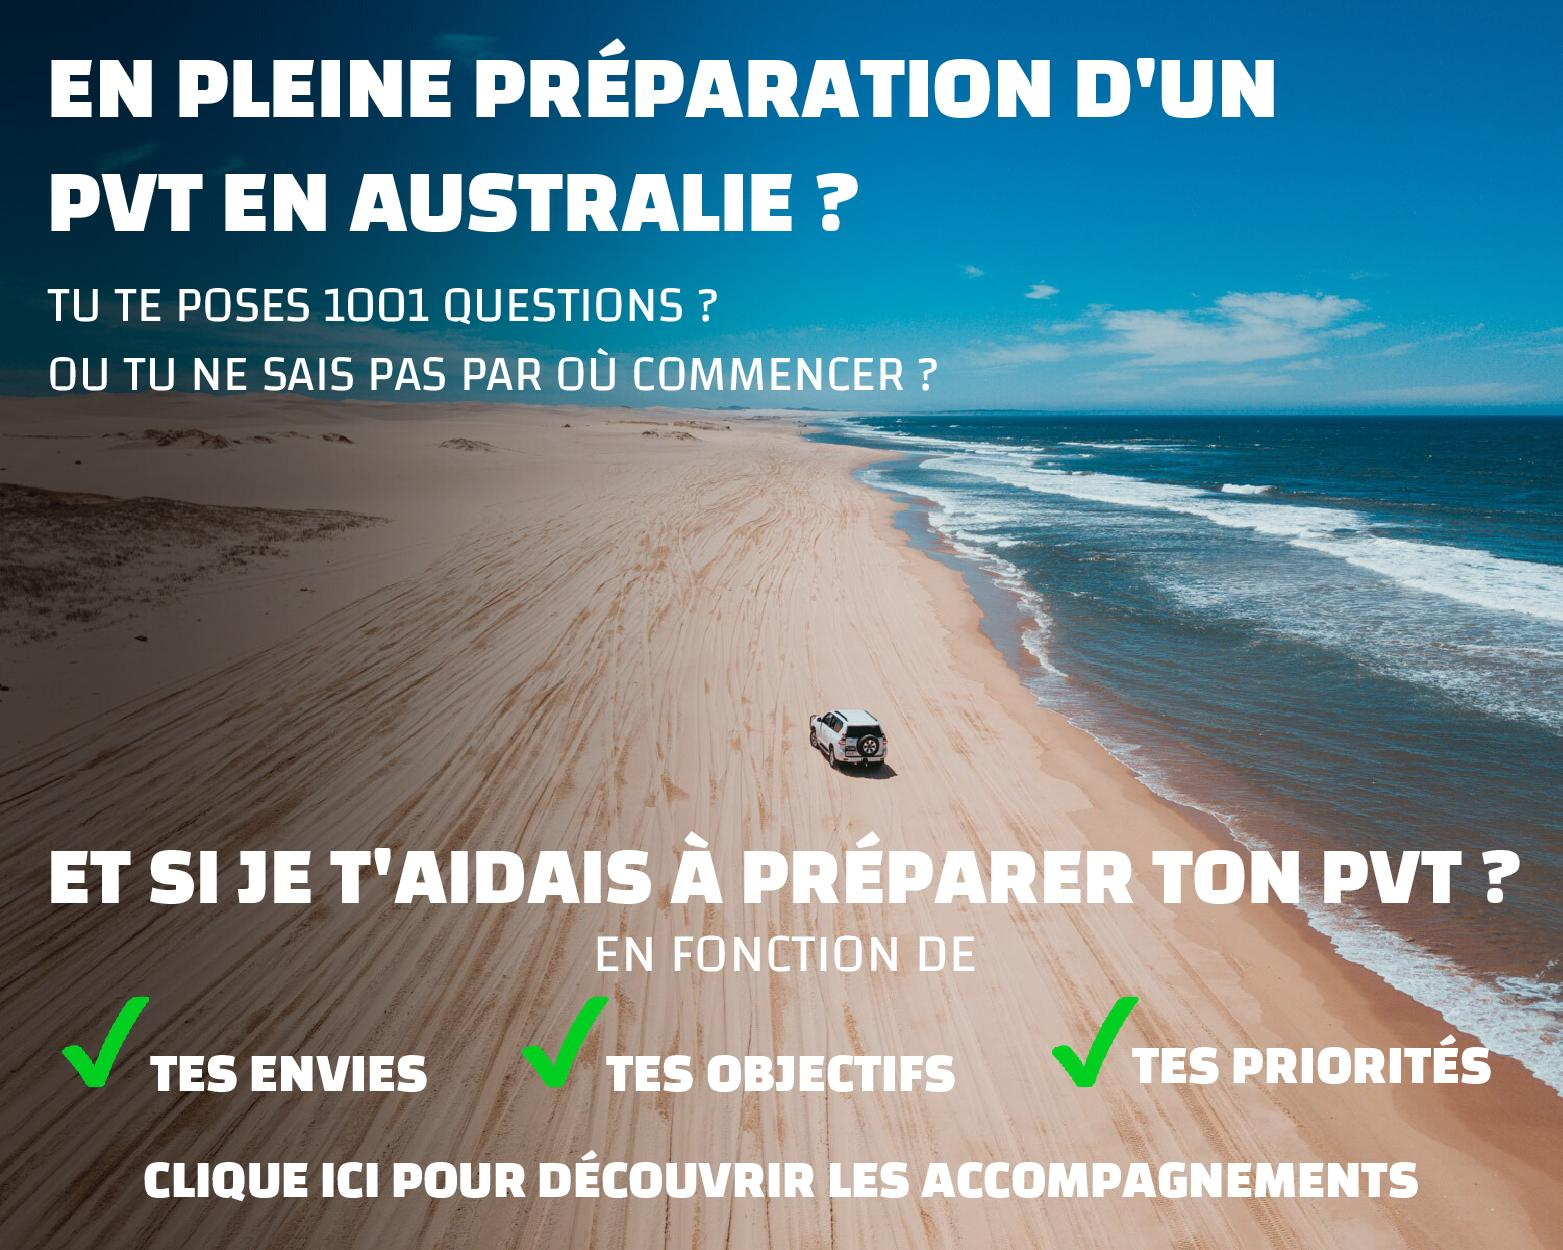 accompagnement-pvt-australie